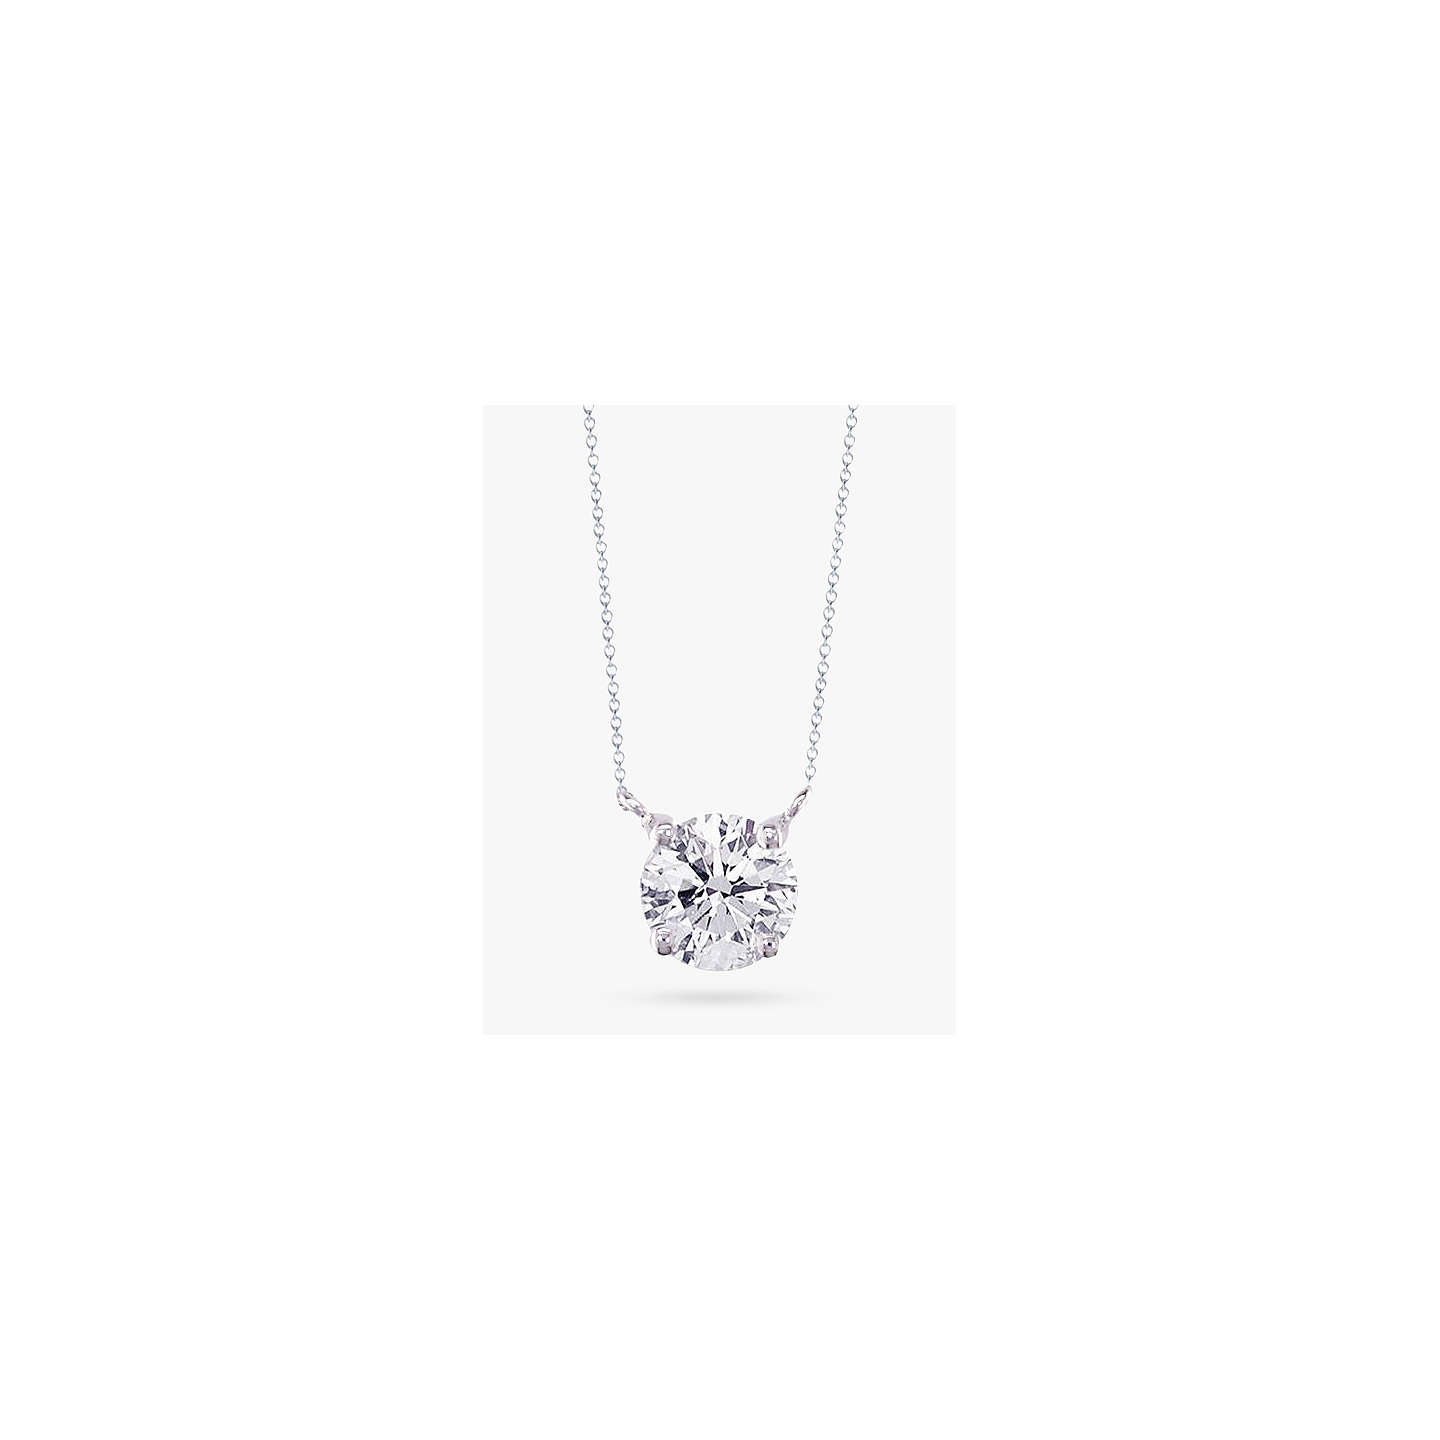 necklace set white diamond pdp and earrings solitaire main cut brilliant buymogul jewellery rsp mogul pendant stud gold